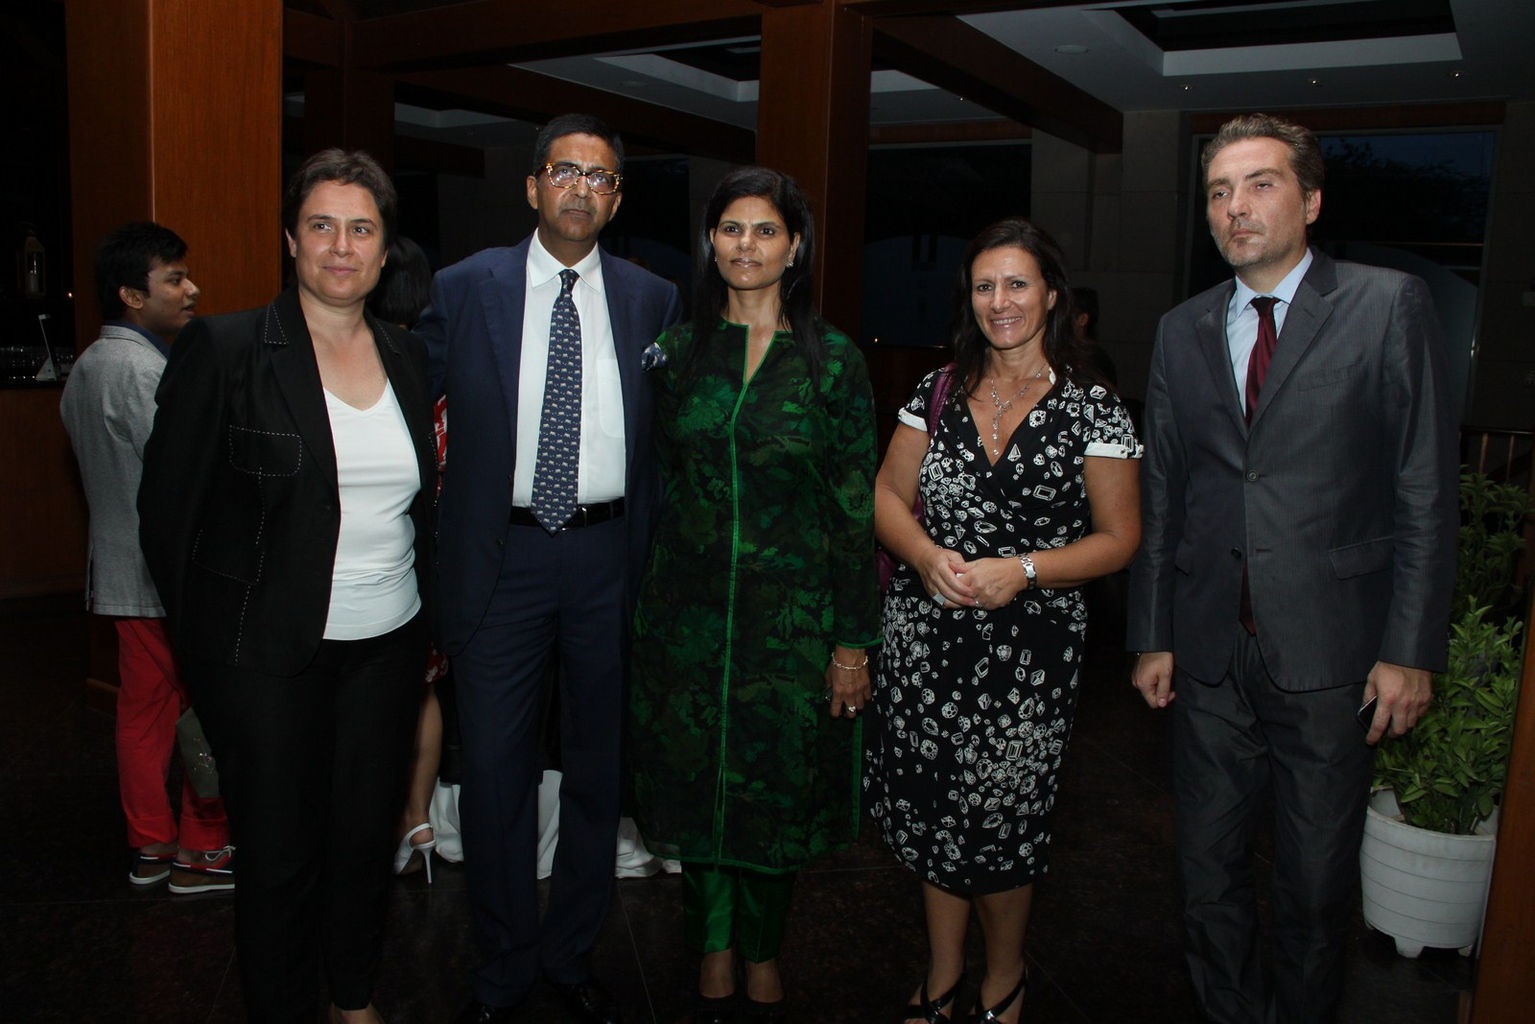 Mr. & Mrs. Gupta with Luana Carcao (professor from SDA Bocconi) ,Ms Erica Di Giovancarlo & Mr. Gianluca Brusco our chief guest from Italian Embassy.